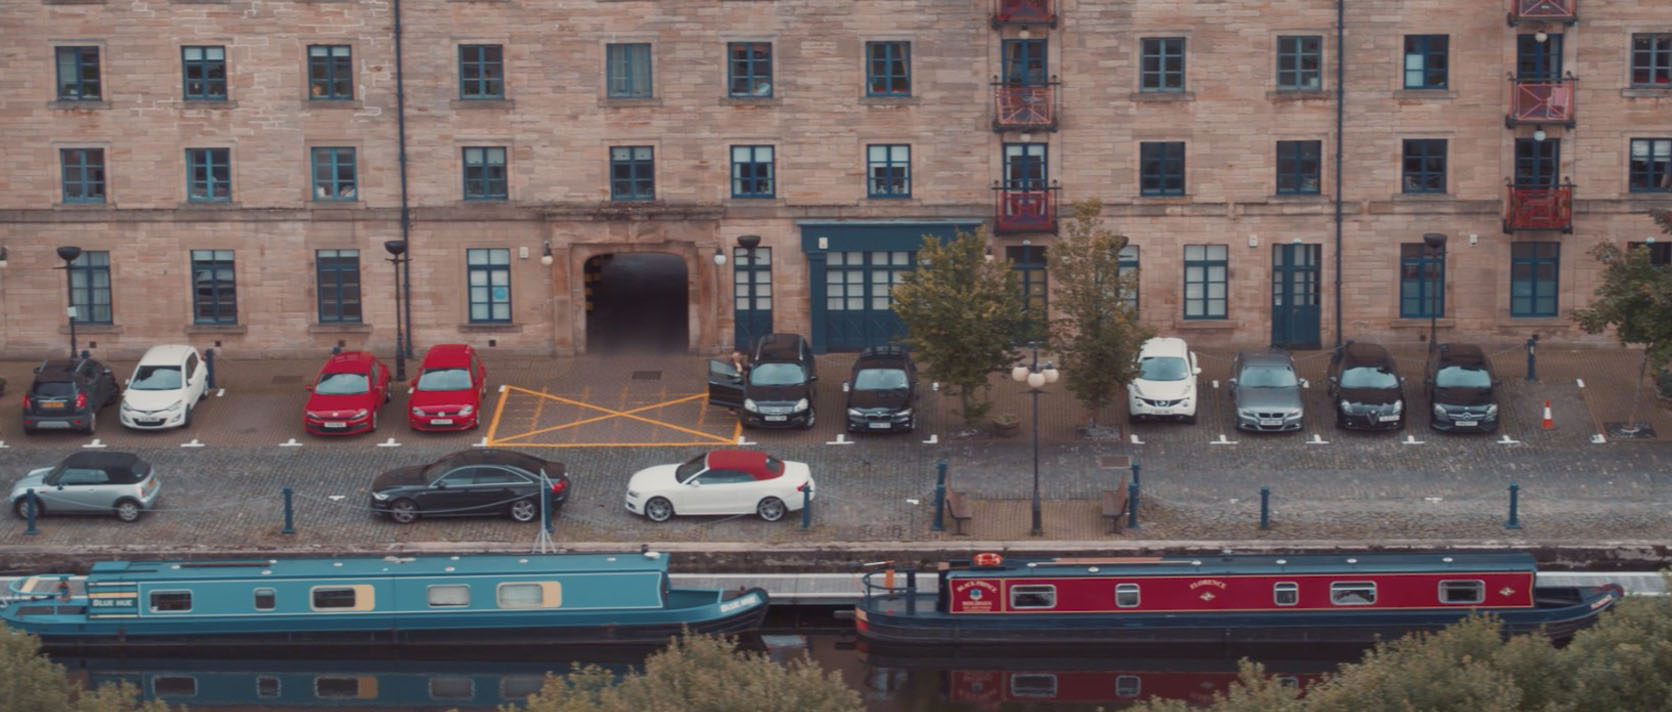 Glasgow Canal Project - Spiers Wharf Video